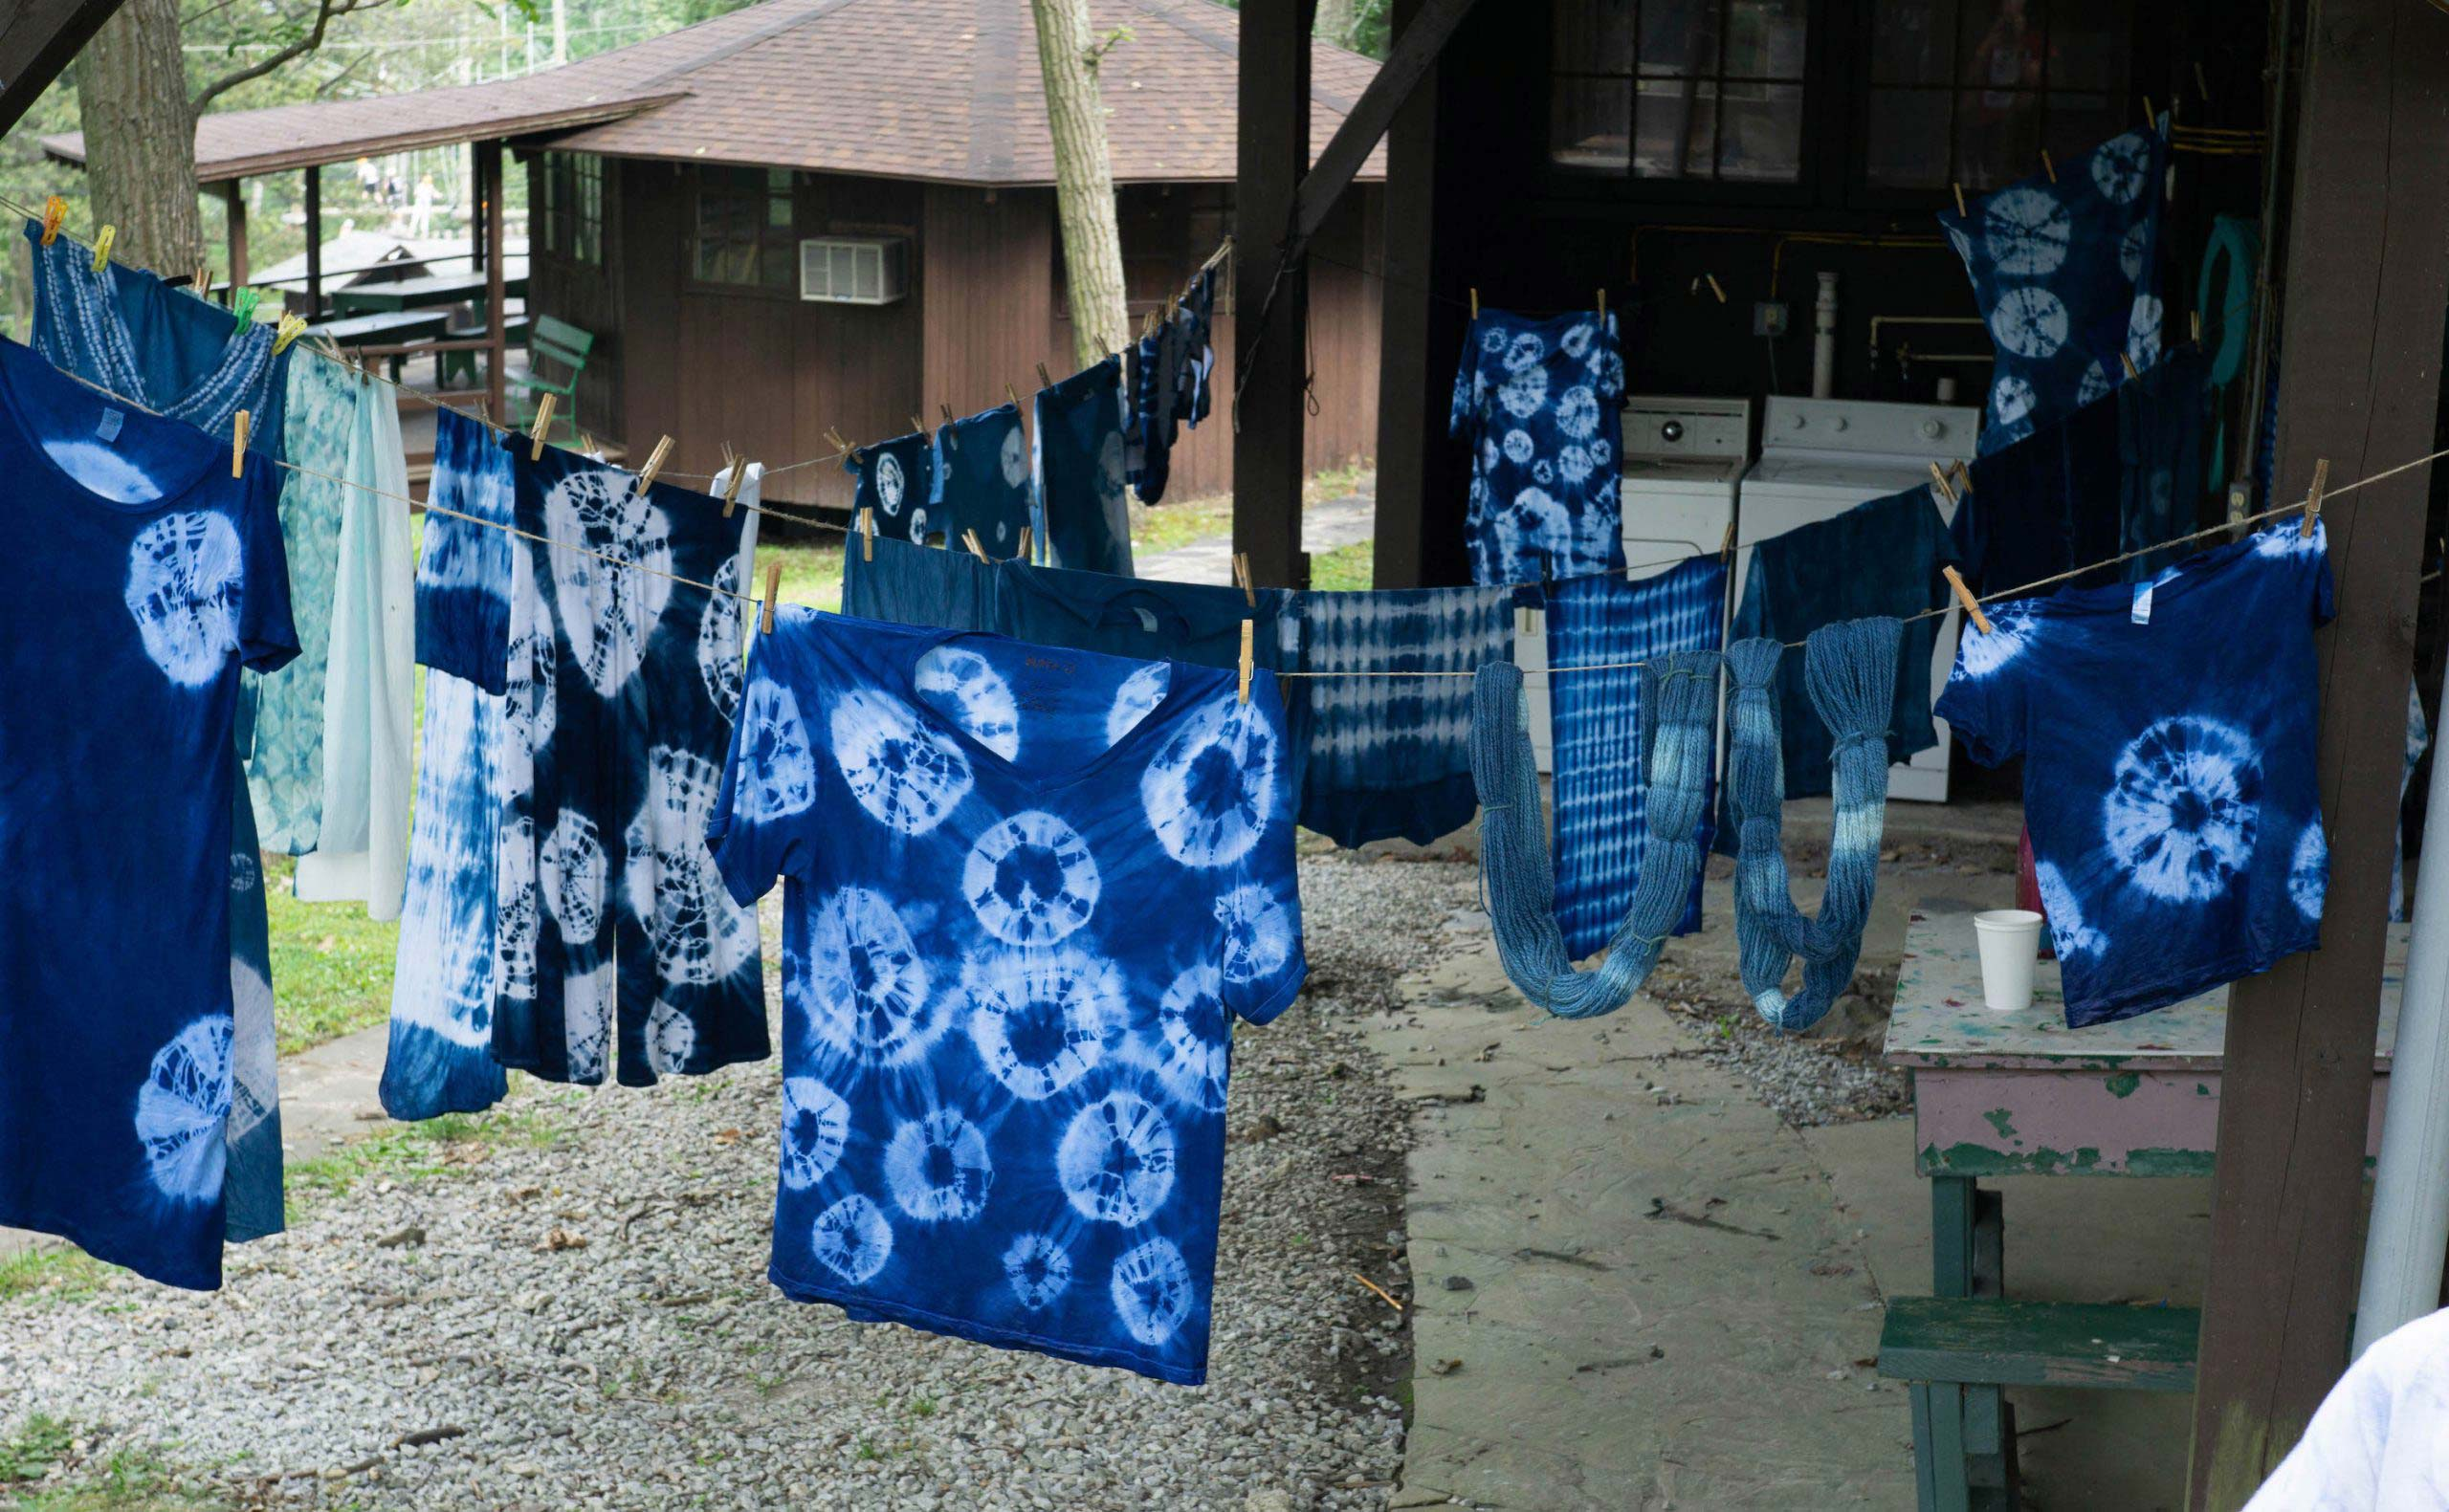 A clothesline of drying shirts dyed with indigo